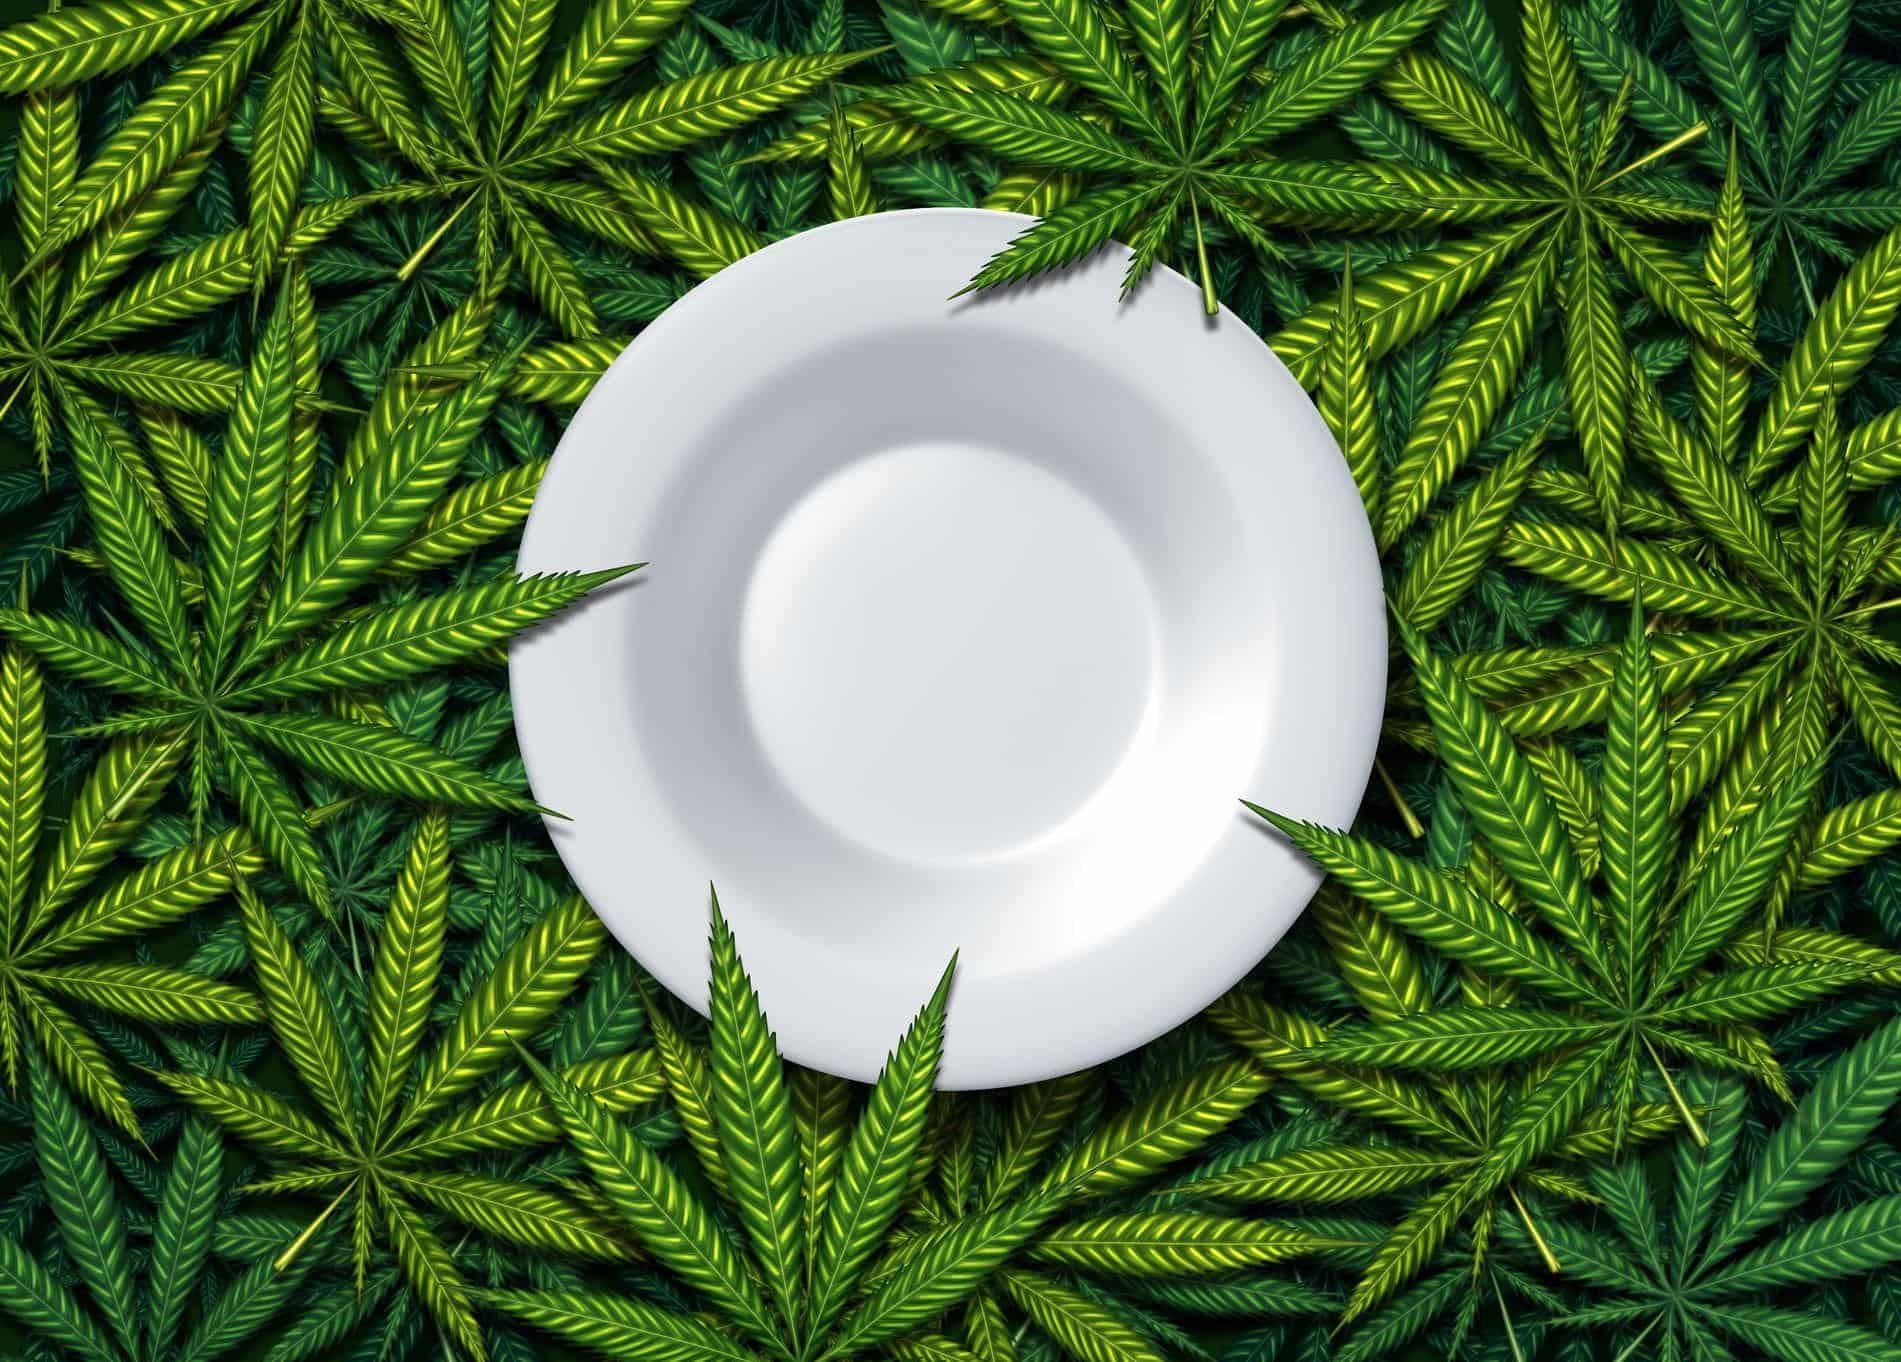 Edibles Weed: Beginner's Guide On How To Get High